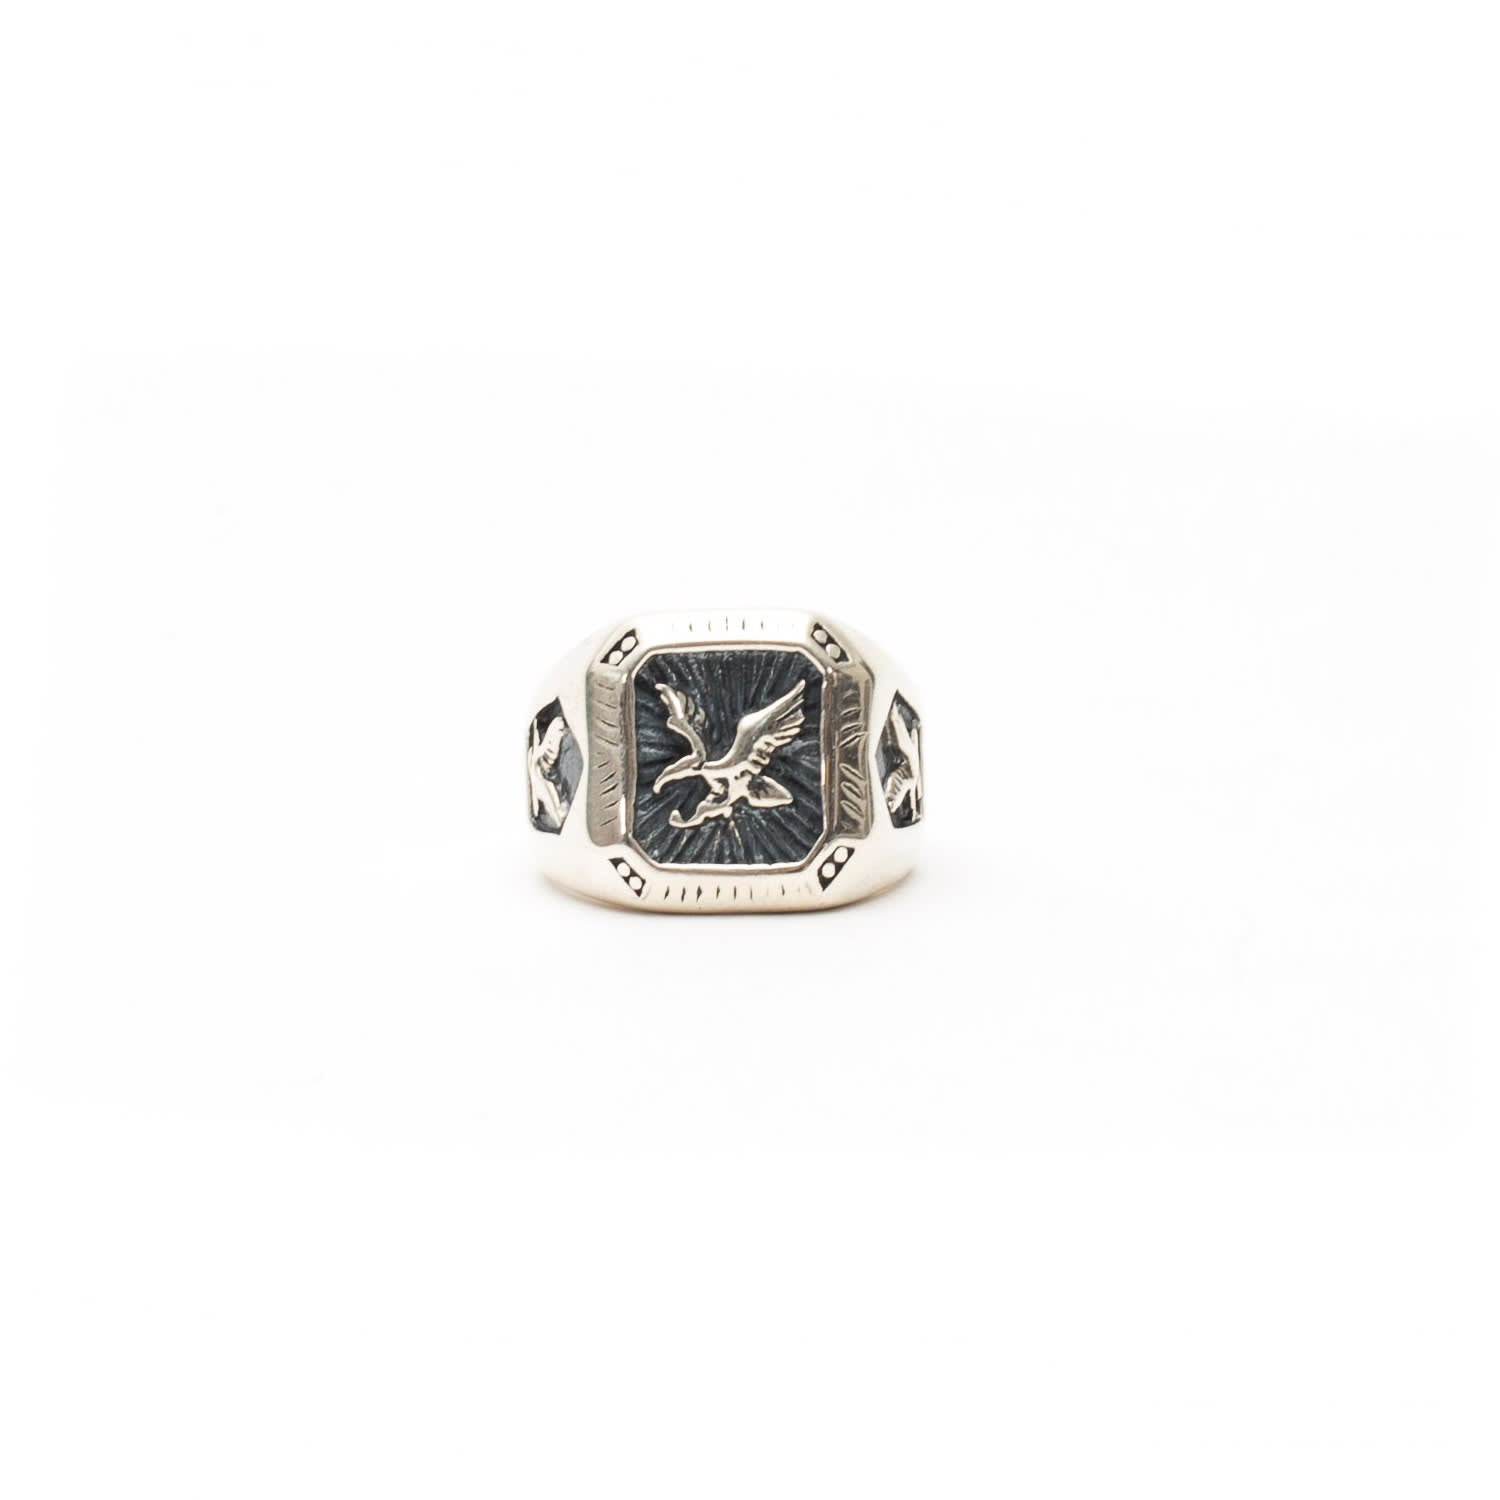 c24889a35dce2 Silver Eagle Ring by Serge DeNimes